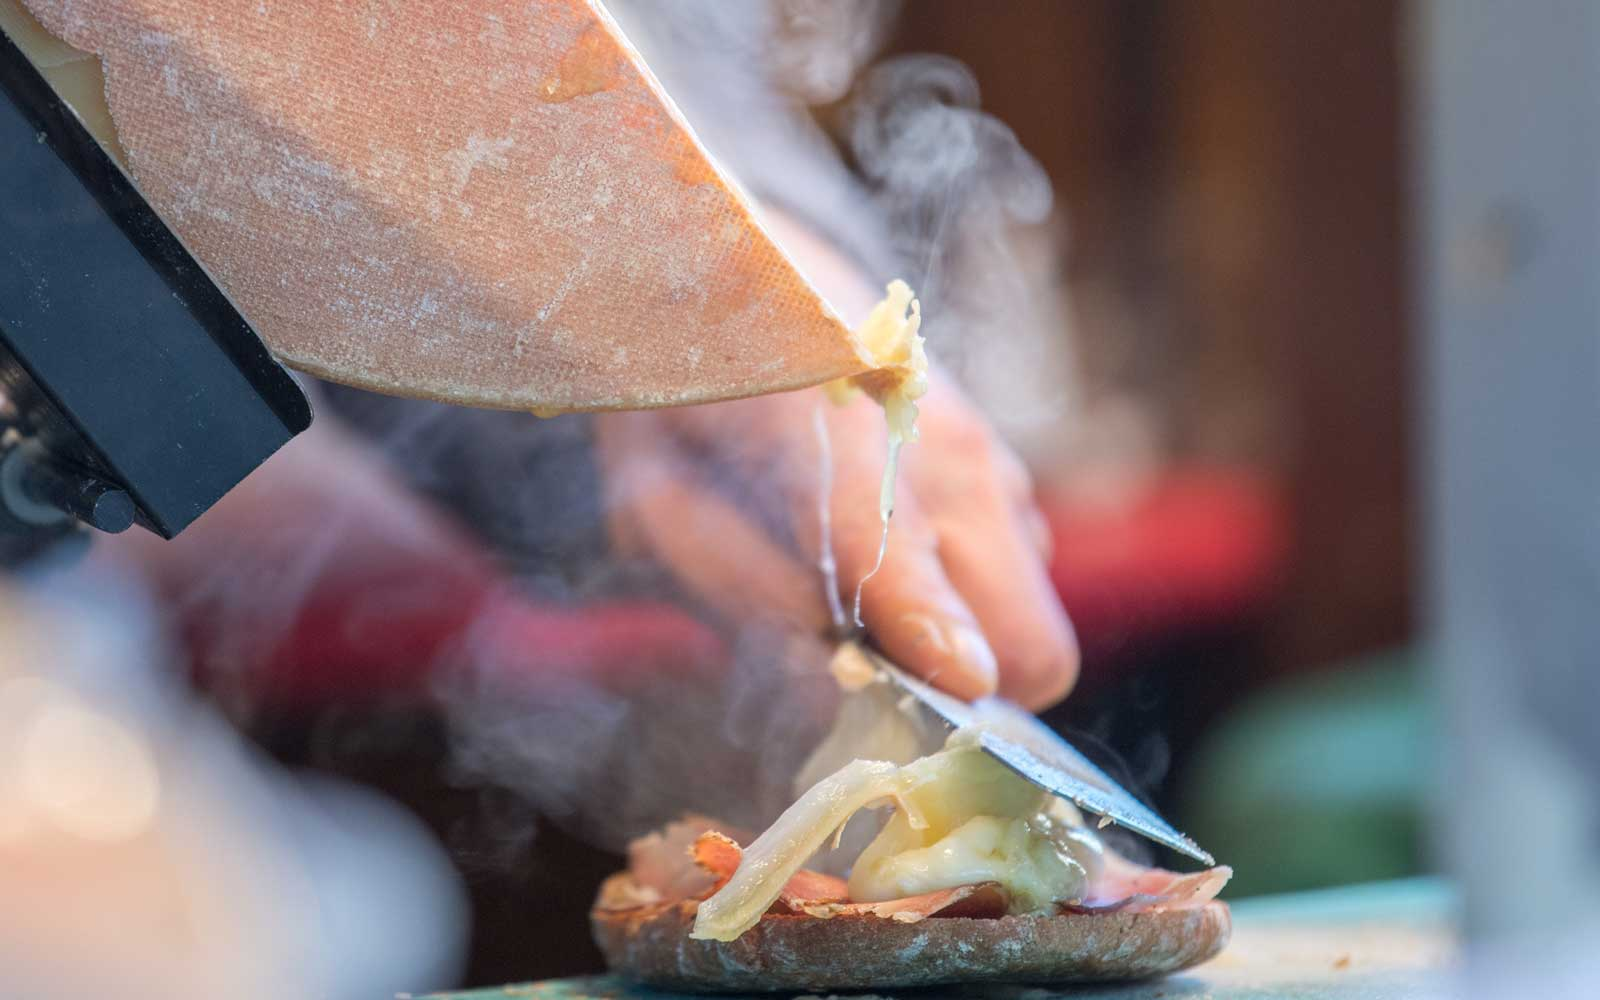 Raclette cheese is a specialty of Switzerland and is often melted and served hot over potatoes.